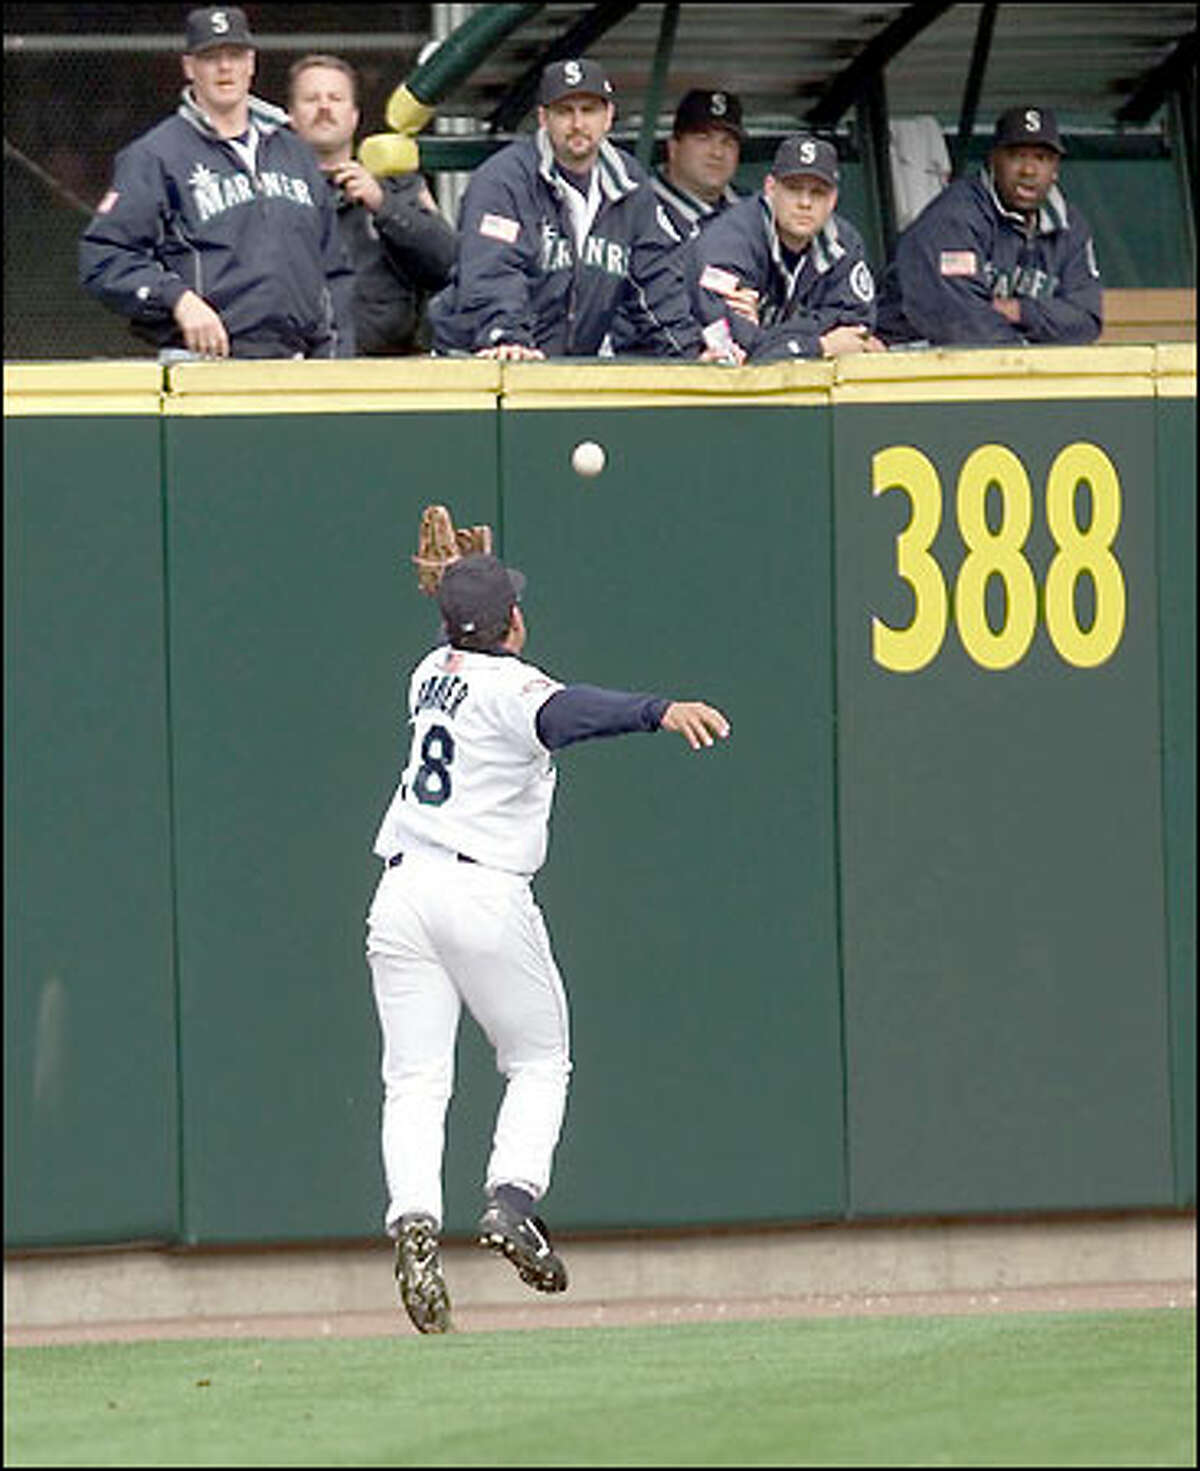 As the Mariners bullpen looks on, Stan Javier races after a deep-hit double by the Indians' Travis Fryman. Fryman later scored Cleveland's first run of the game on a single by Kenny Lofton.